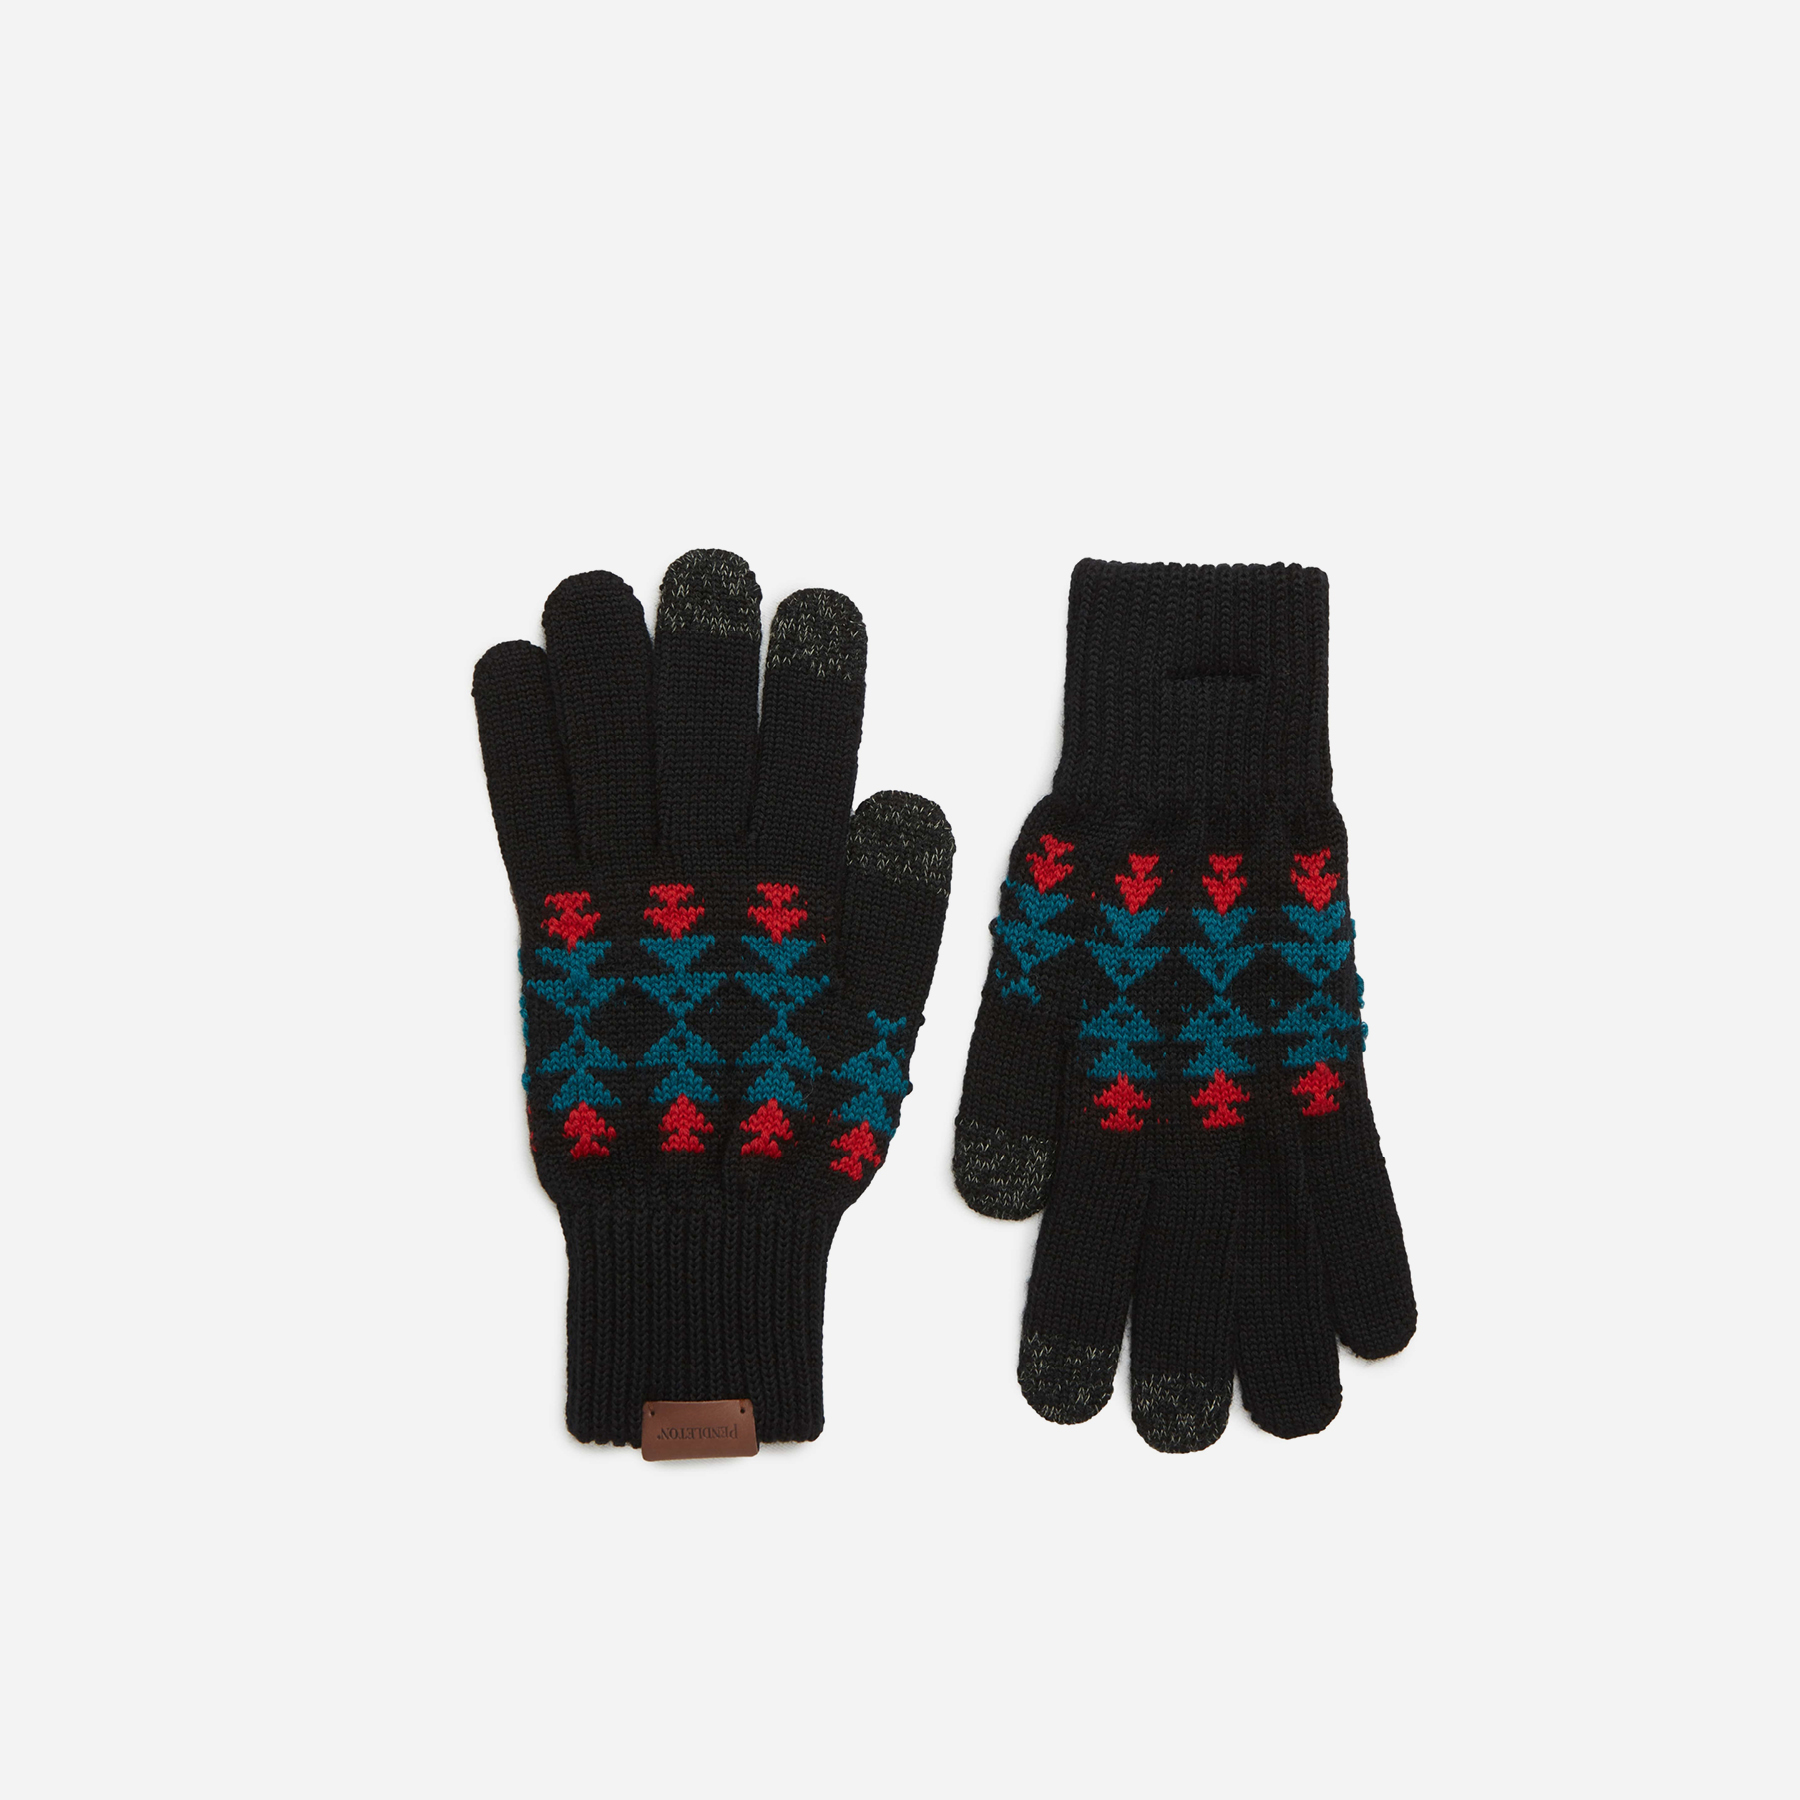 ALL-SORTS-OF-PENDLETON-GLOVES